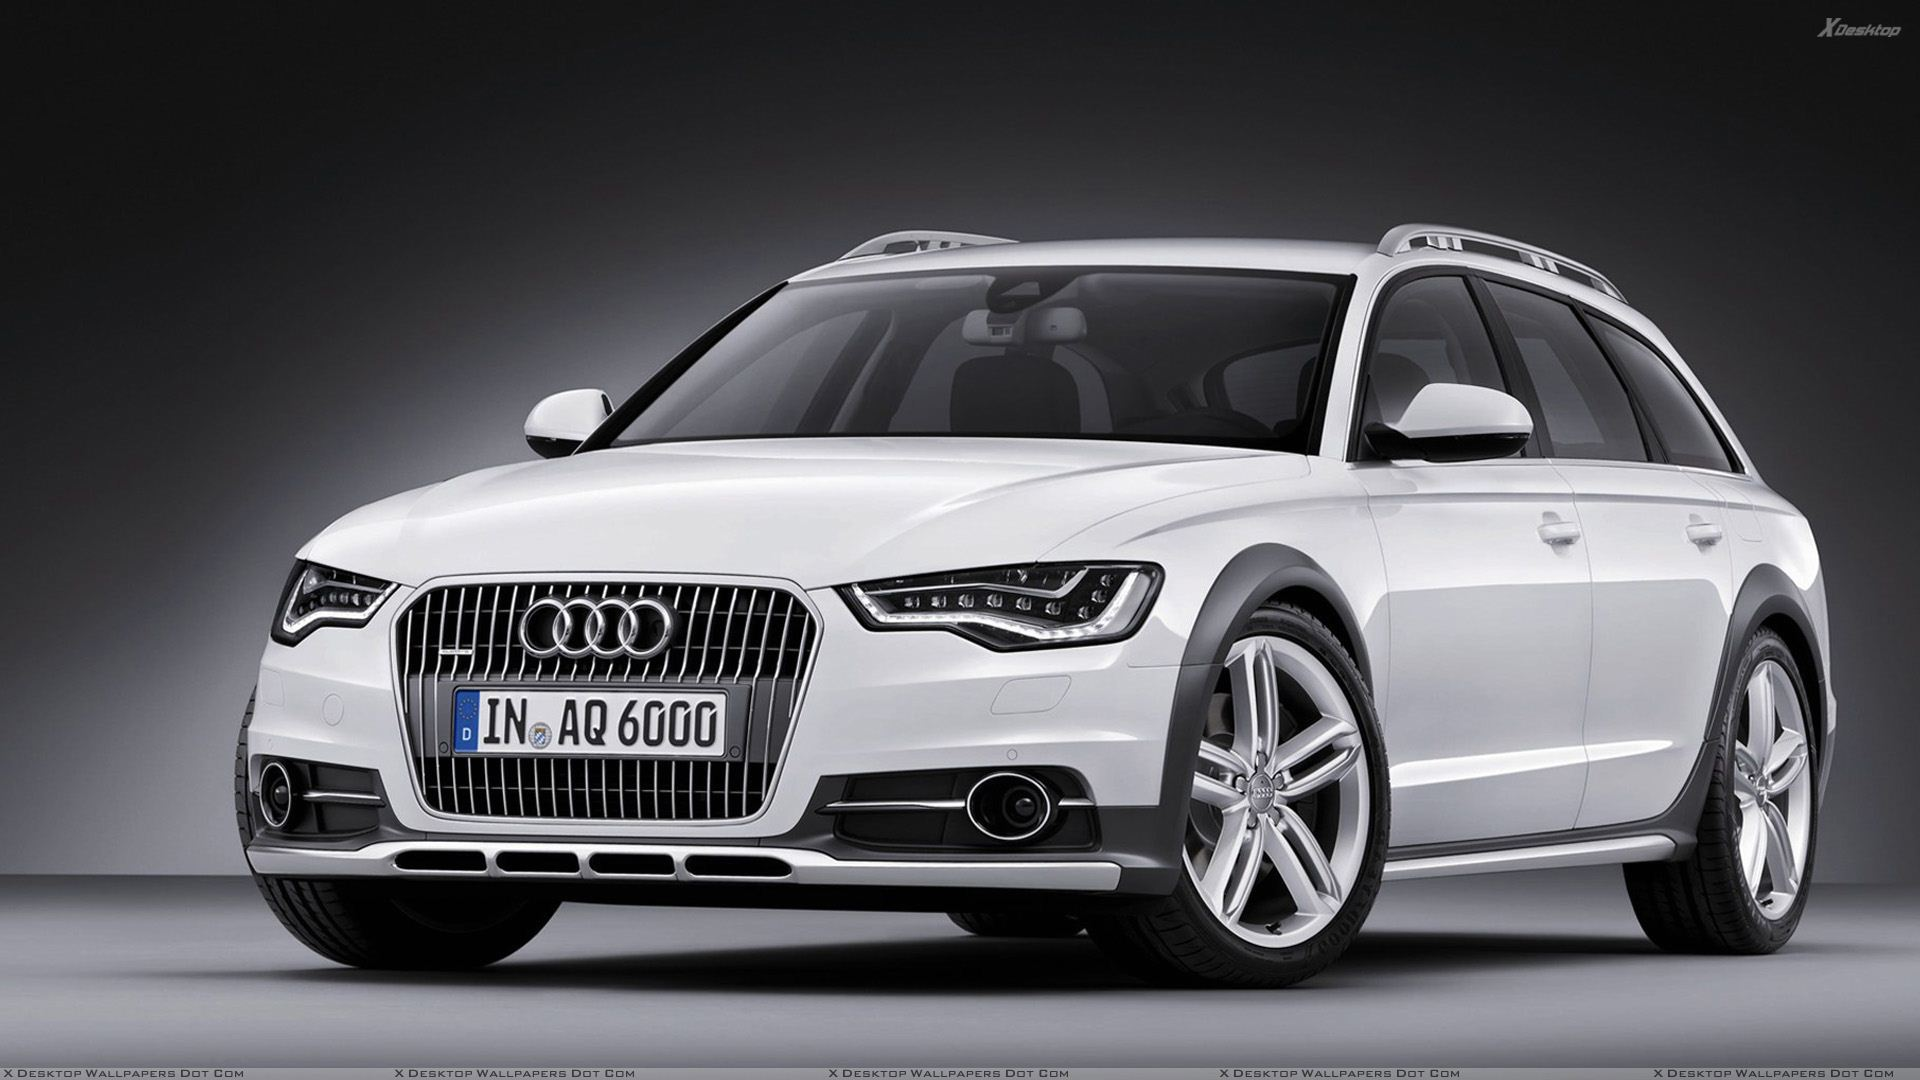 Audi A6 Wallpapers Photos Images In Hd